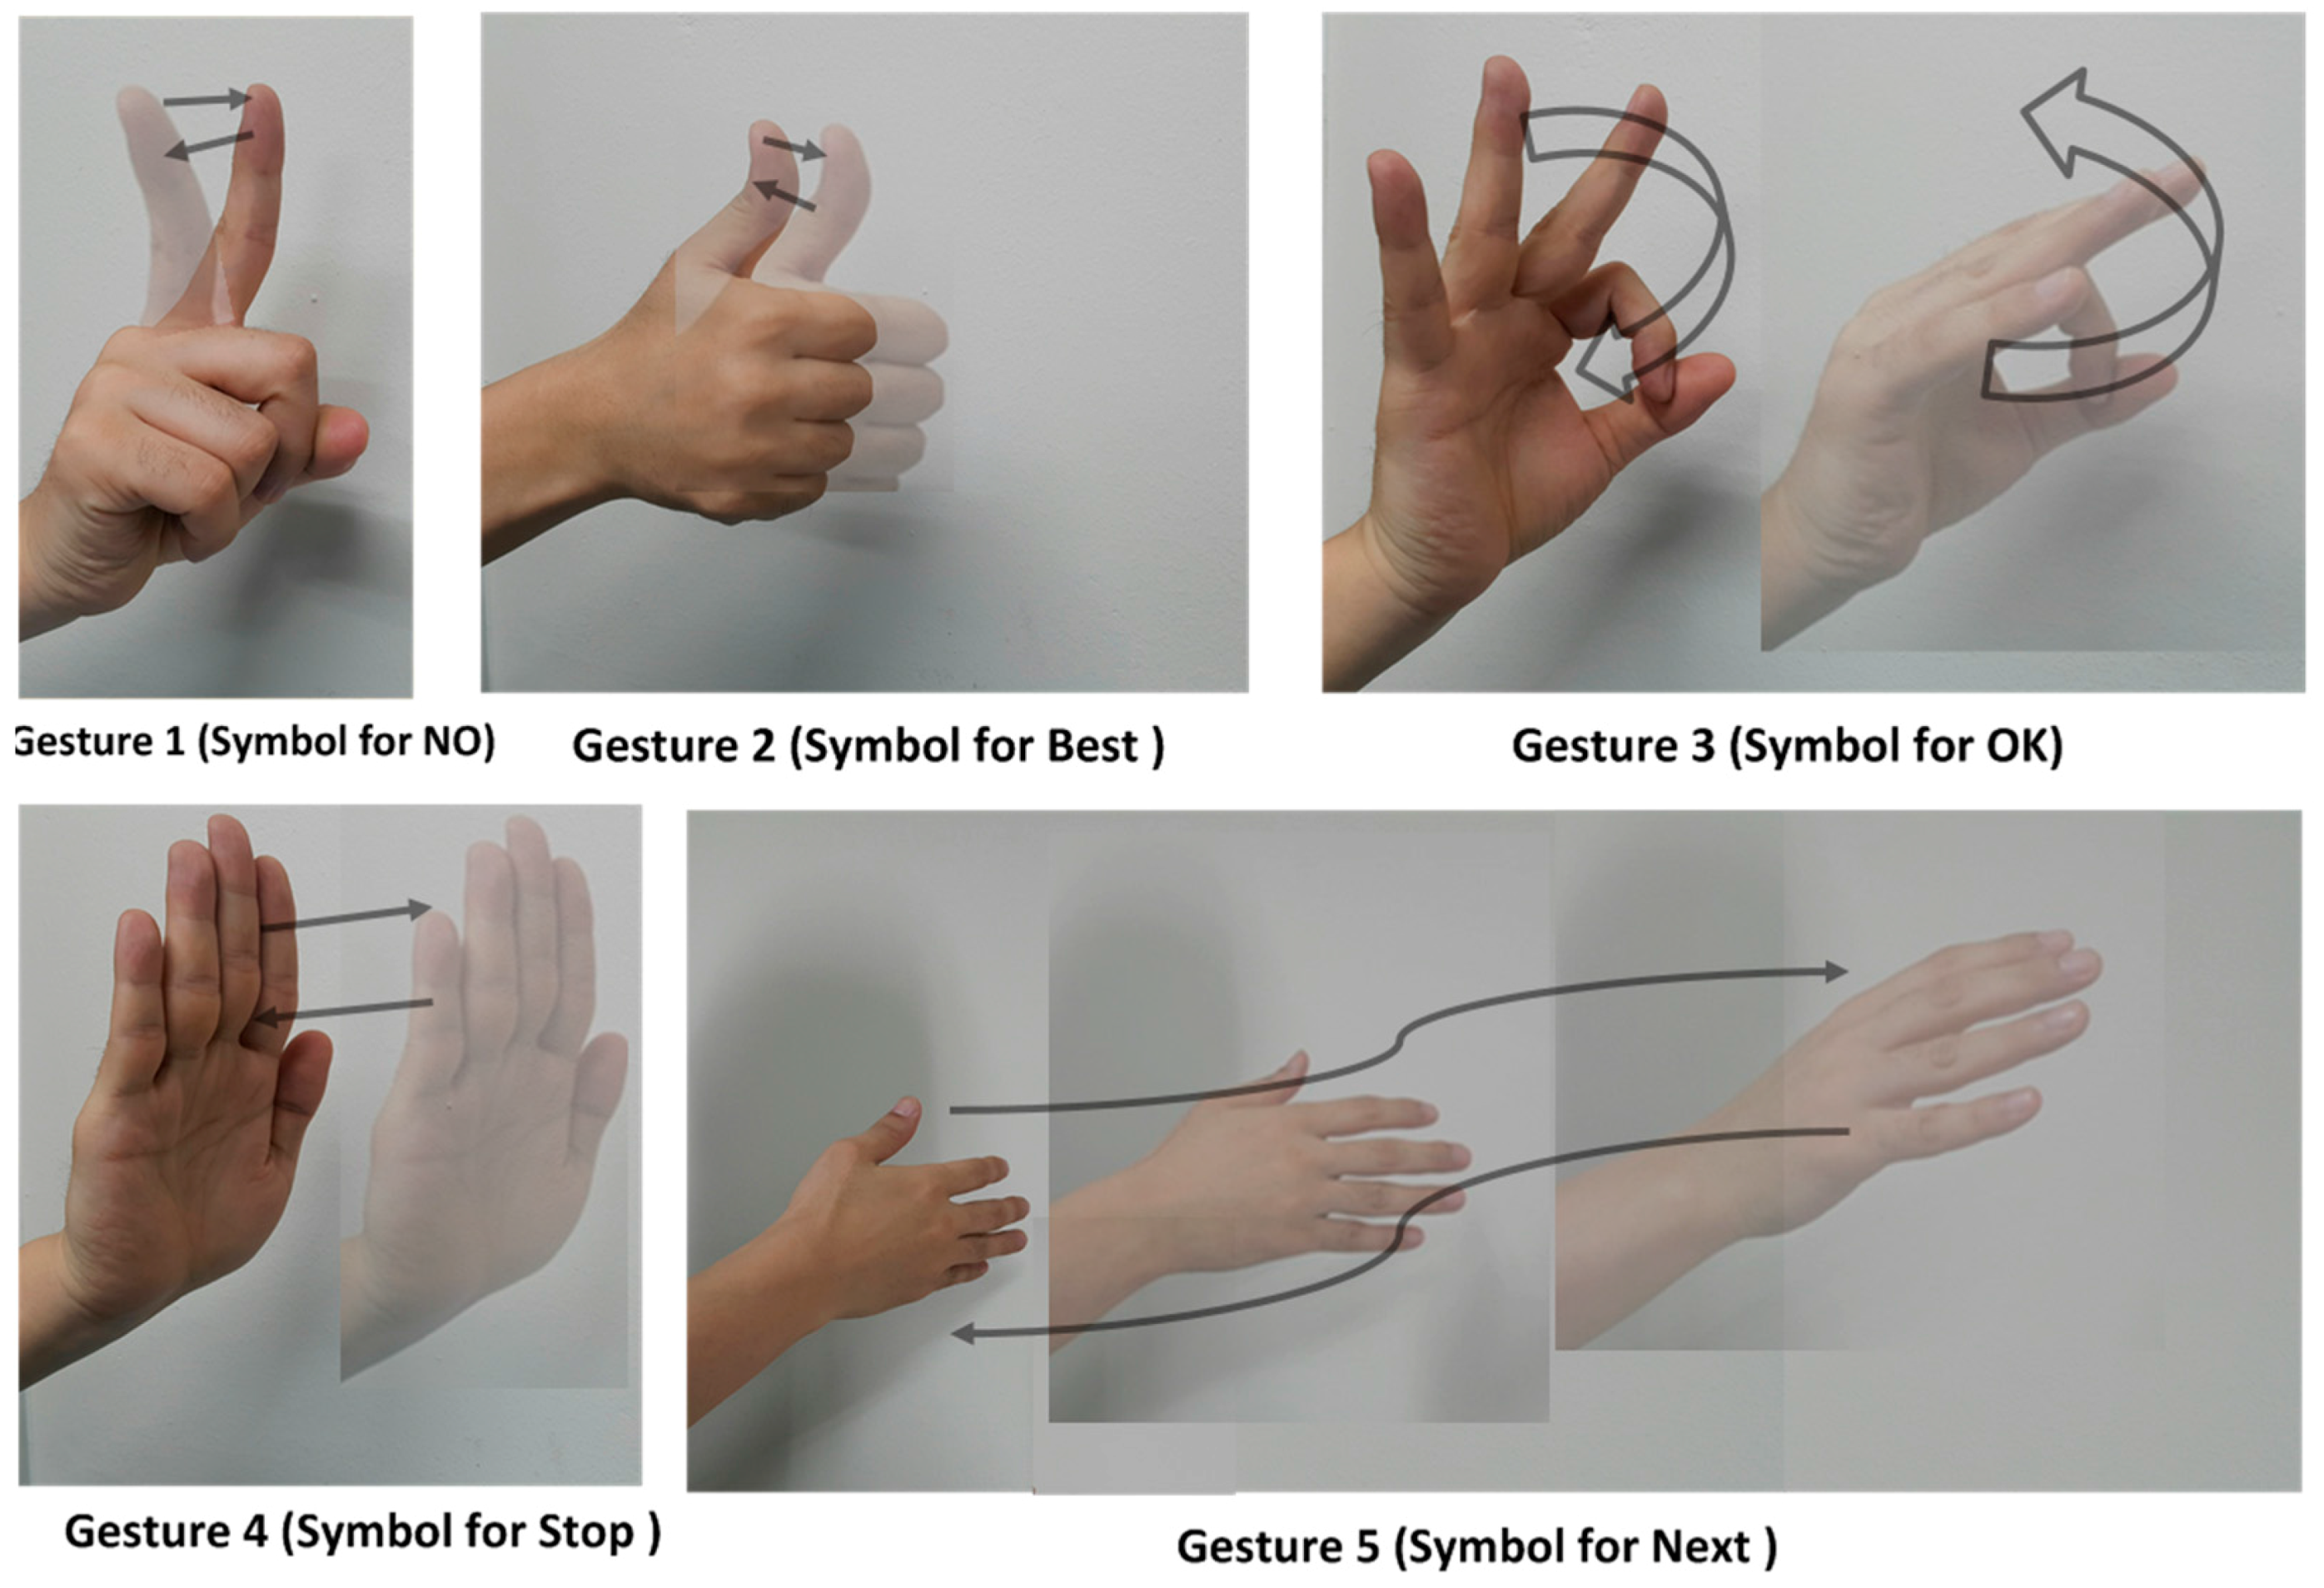 Upper Saddle River Nj >> Sensors | Free Full-Text | Hand-Based Gesture Recognition for Vehicular Applications Using IR ...